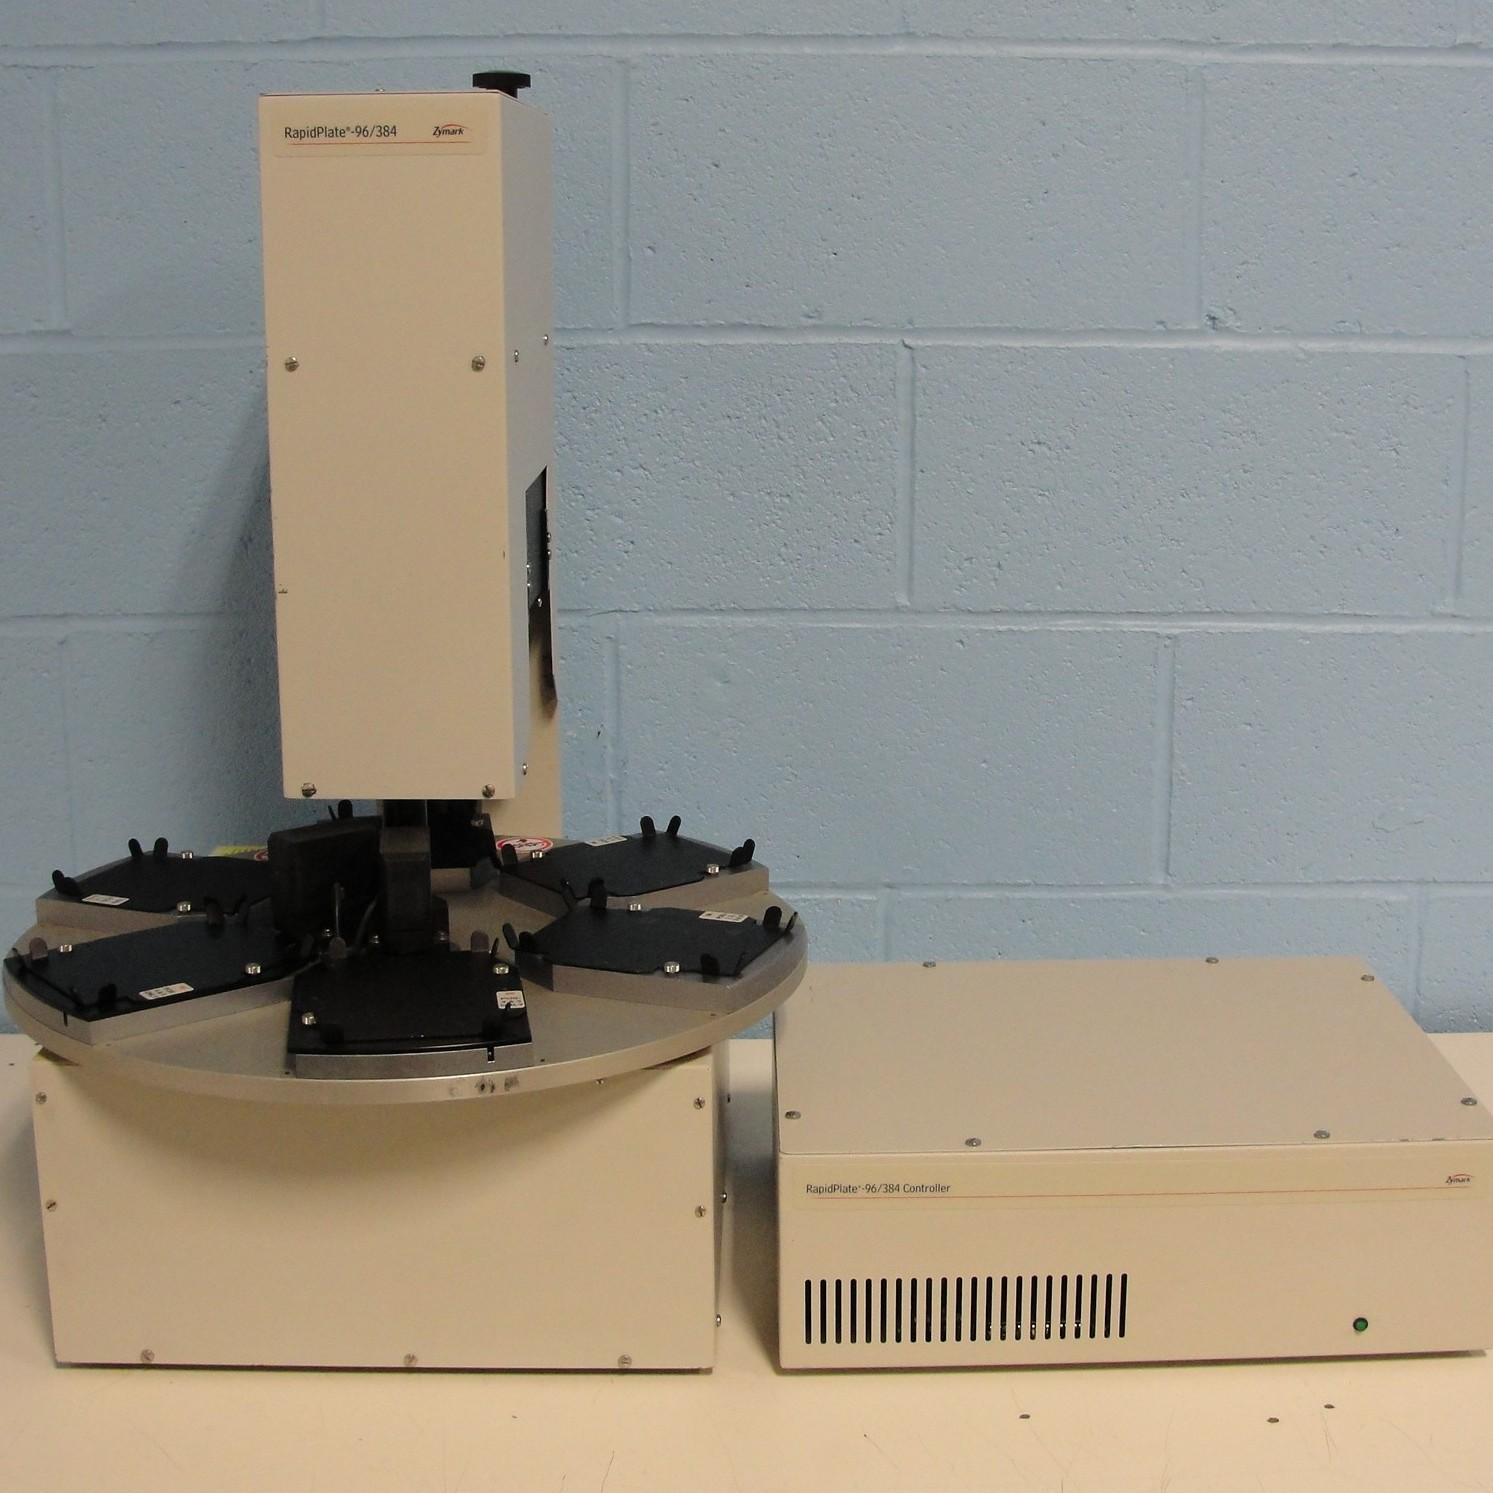 Zymark RapidPlate 96/384 Workstation with Controller Image